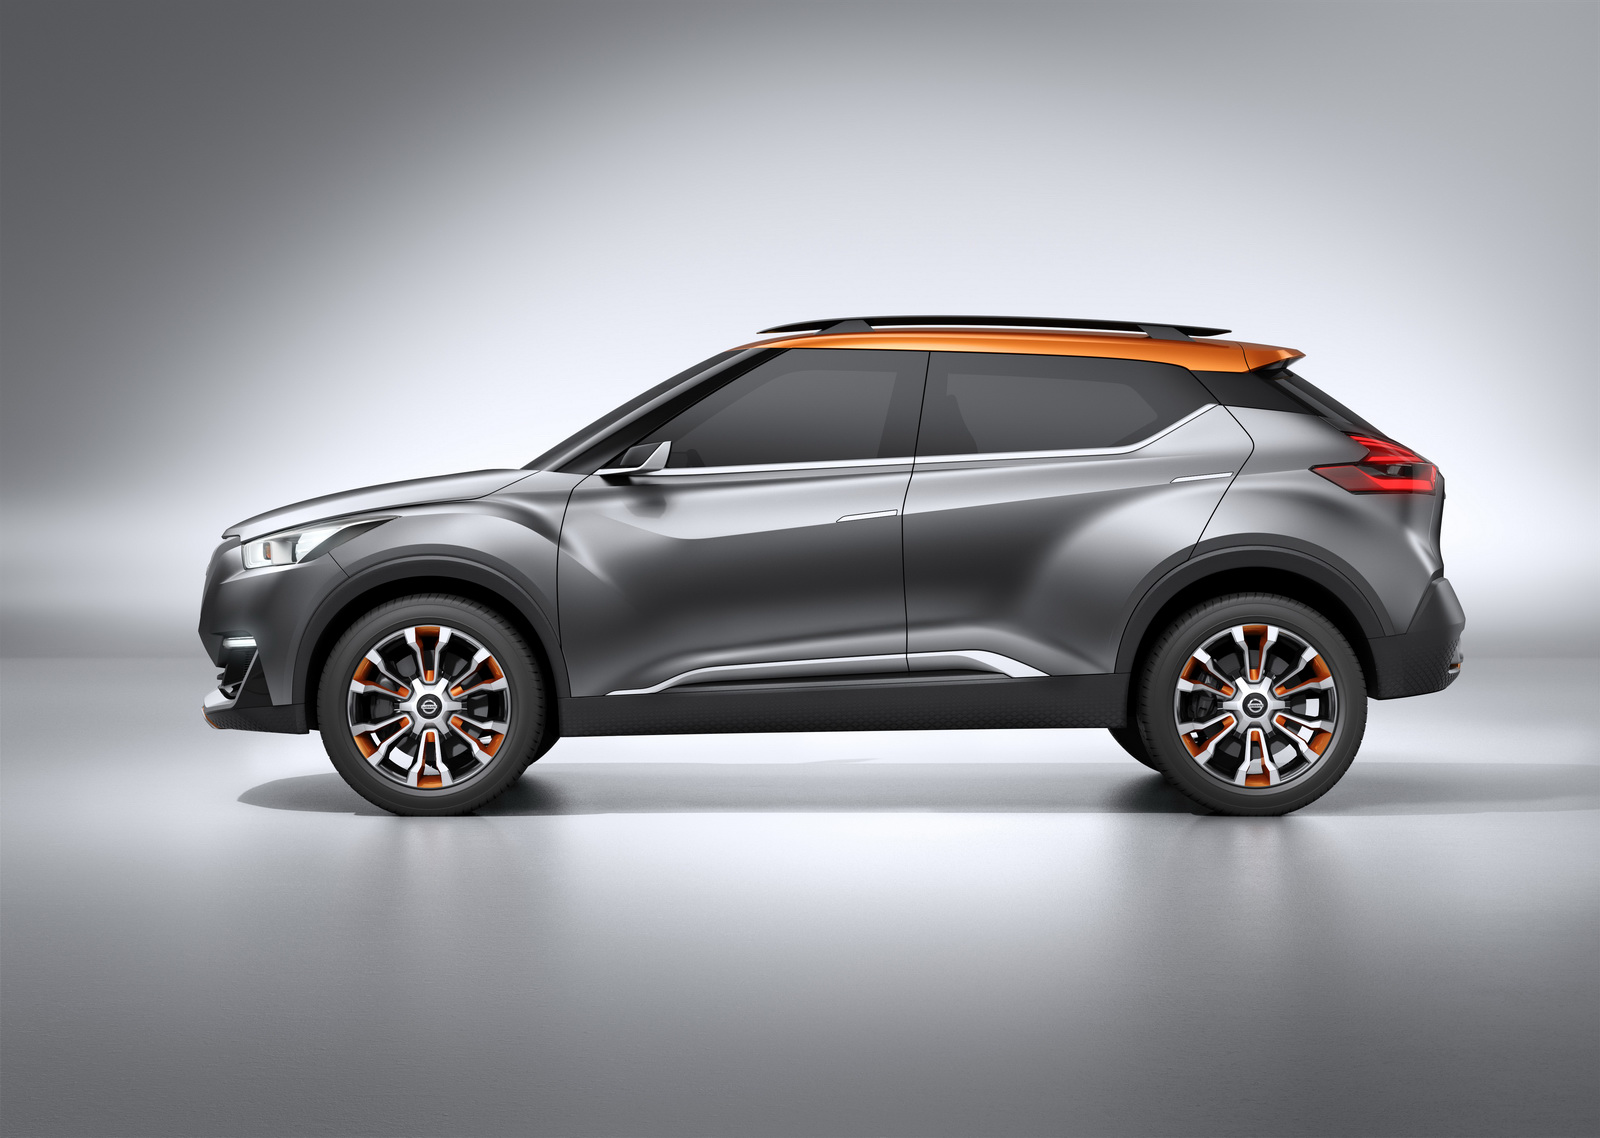 2016 Nissan Juke Nismo >> Nissan Kicks Concept Revealed in Brazil, Looks Like Renault Captur - autoevolution